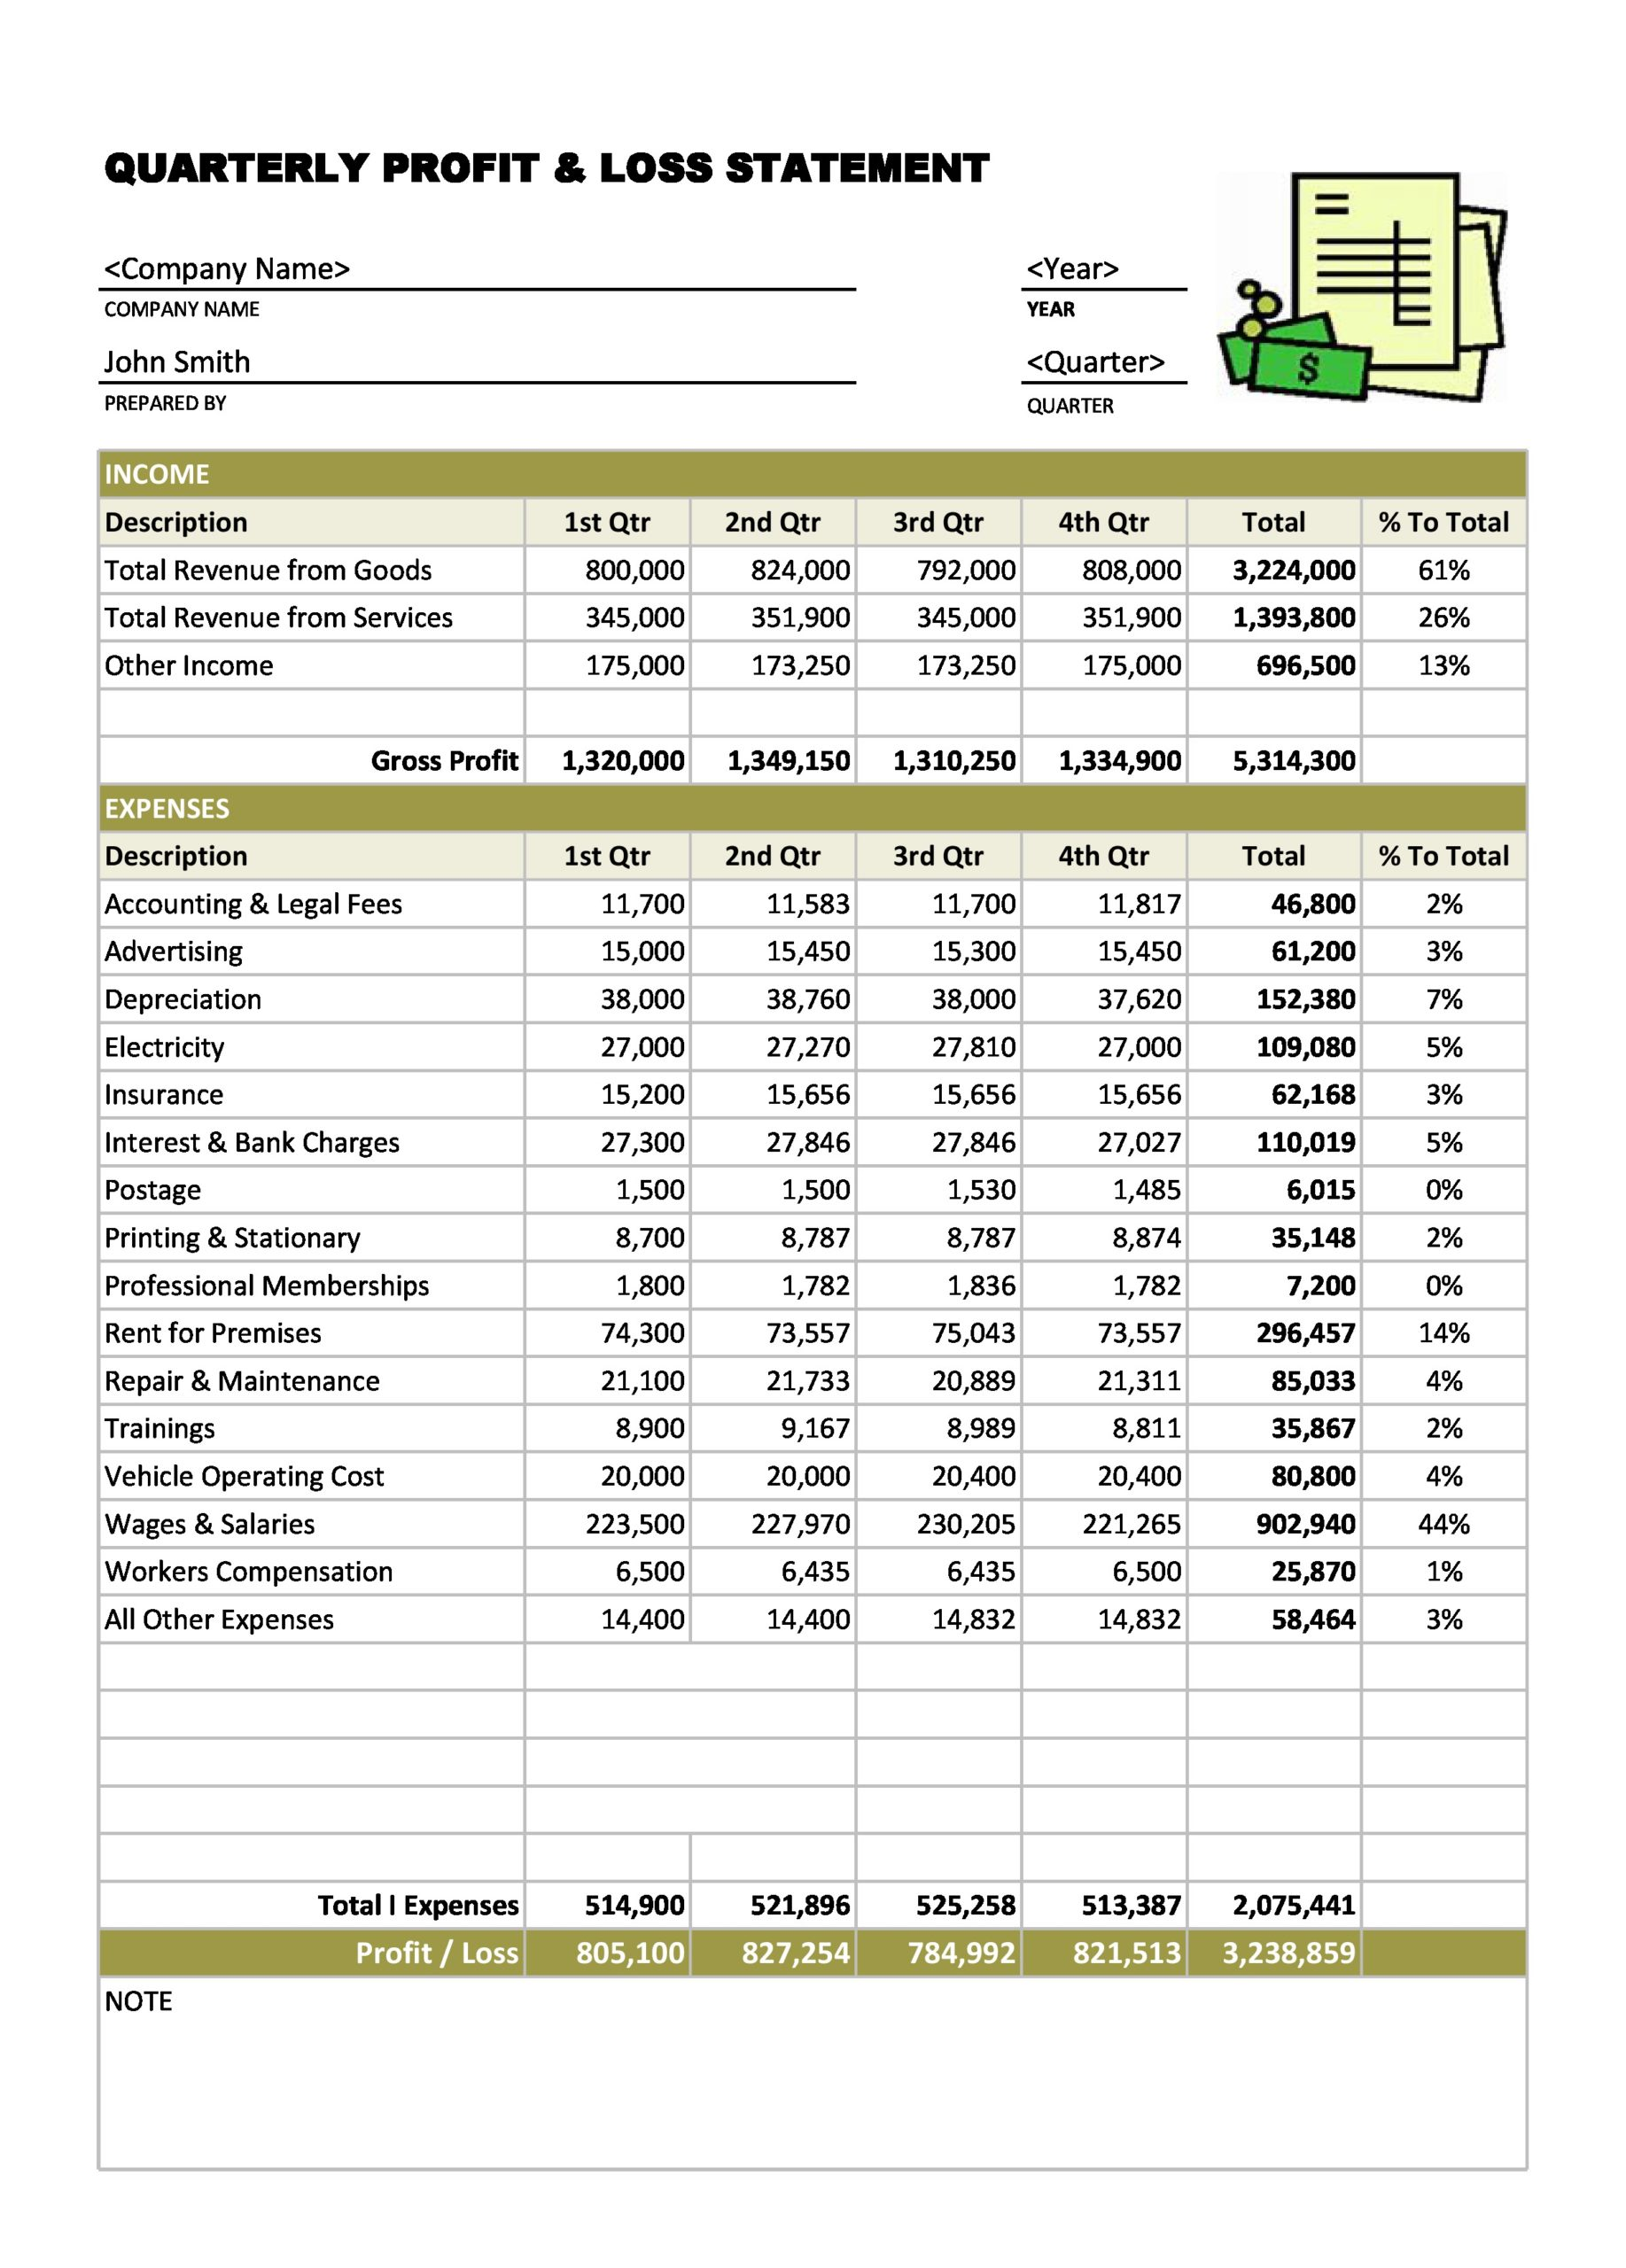 Free Quarterly Profit & Loss Statement Template - TemplateLab